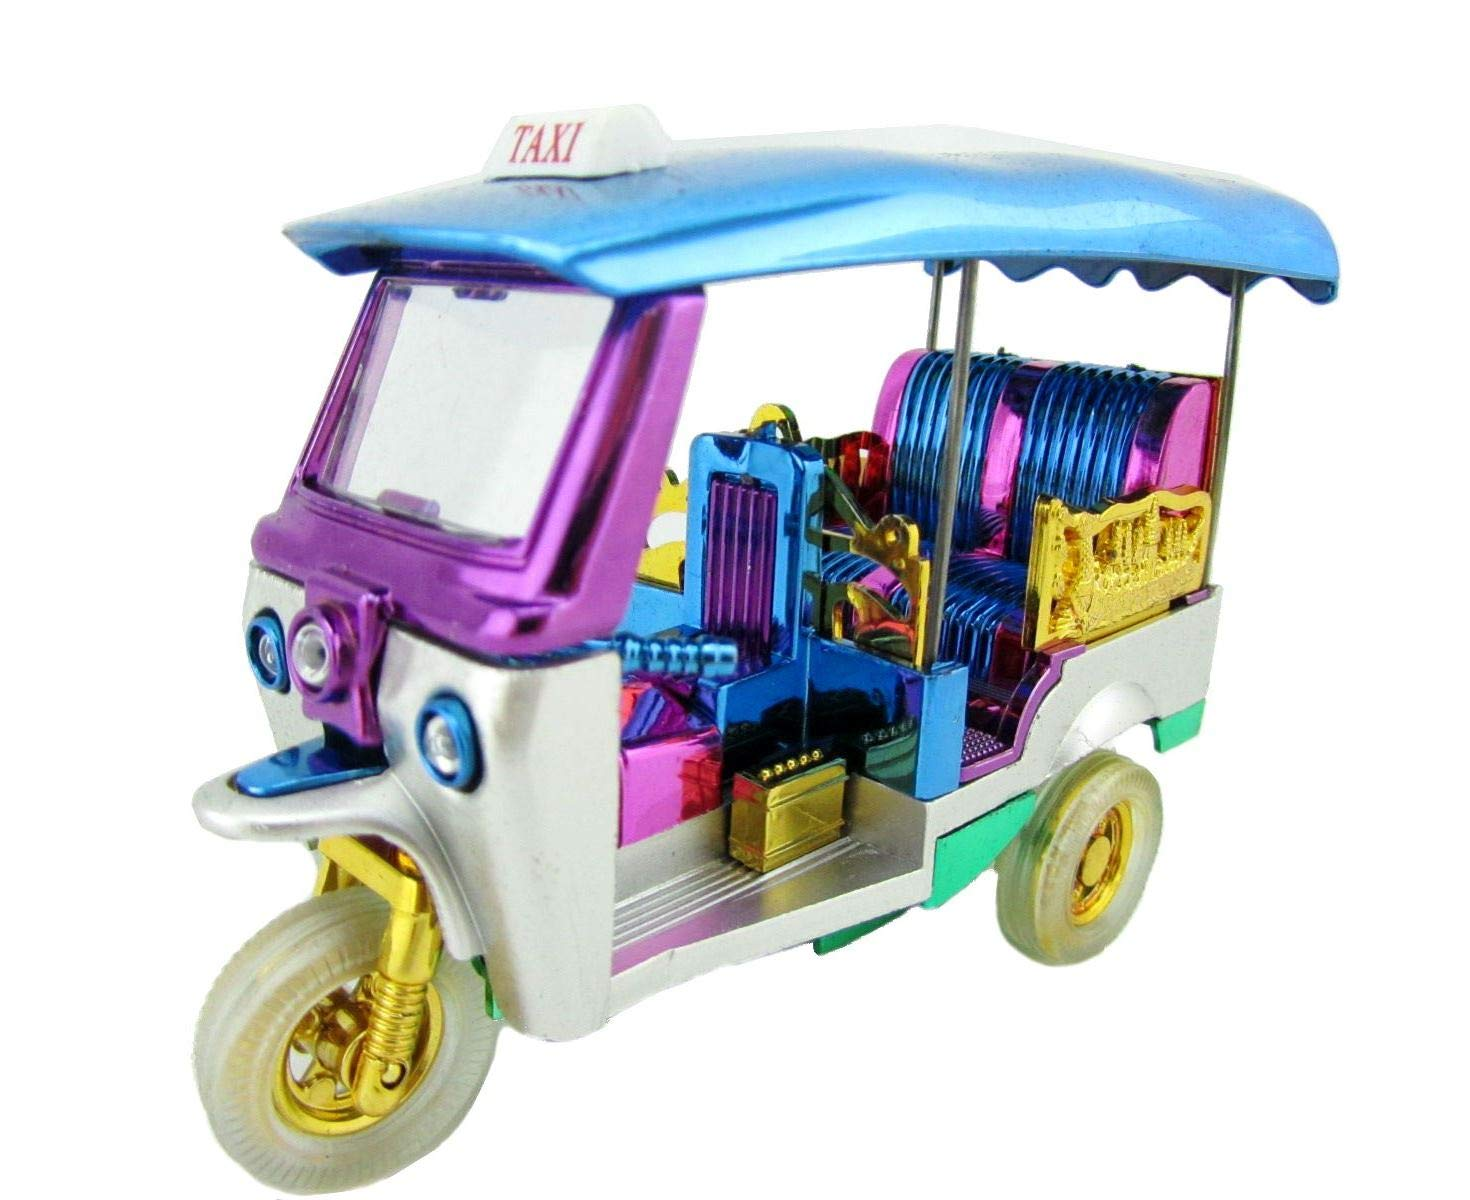 Thai Tuk Tuk Thailand Model Taxi Tricycle Wind Up Wheels Car Toy Vehicle Collectible (Blue) Blue Orchid Tuk Tuk Blue